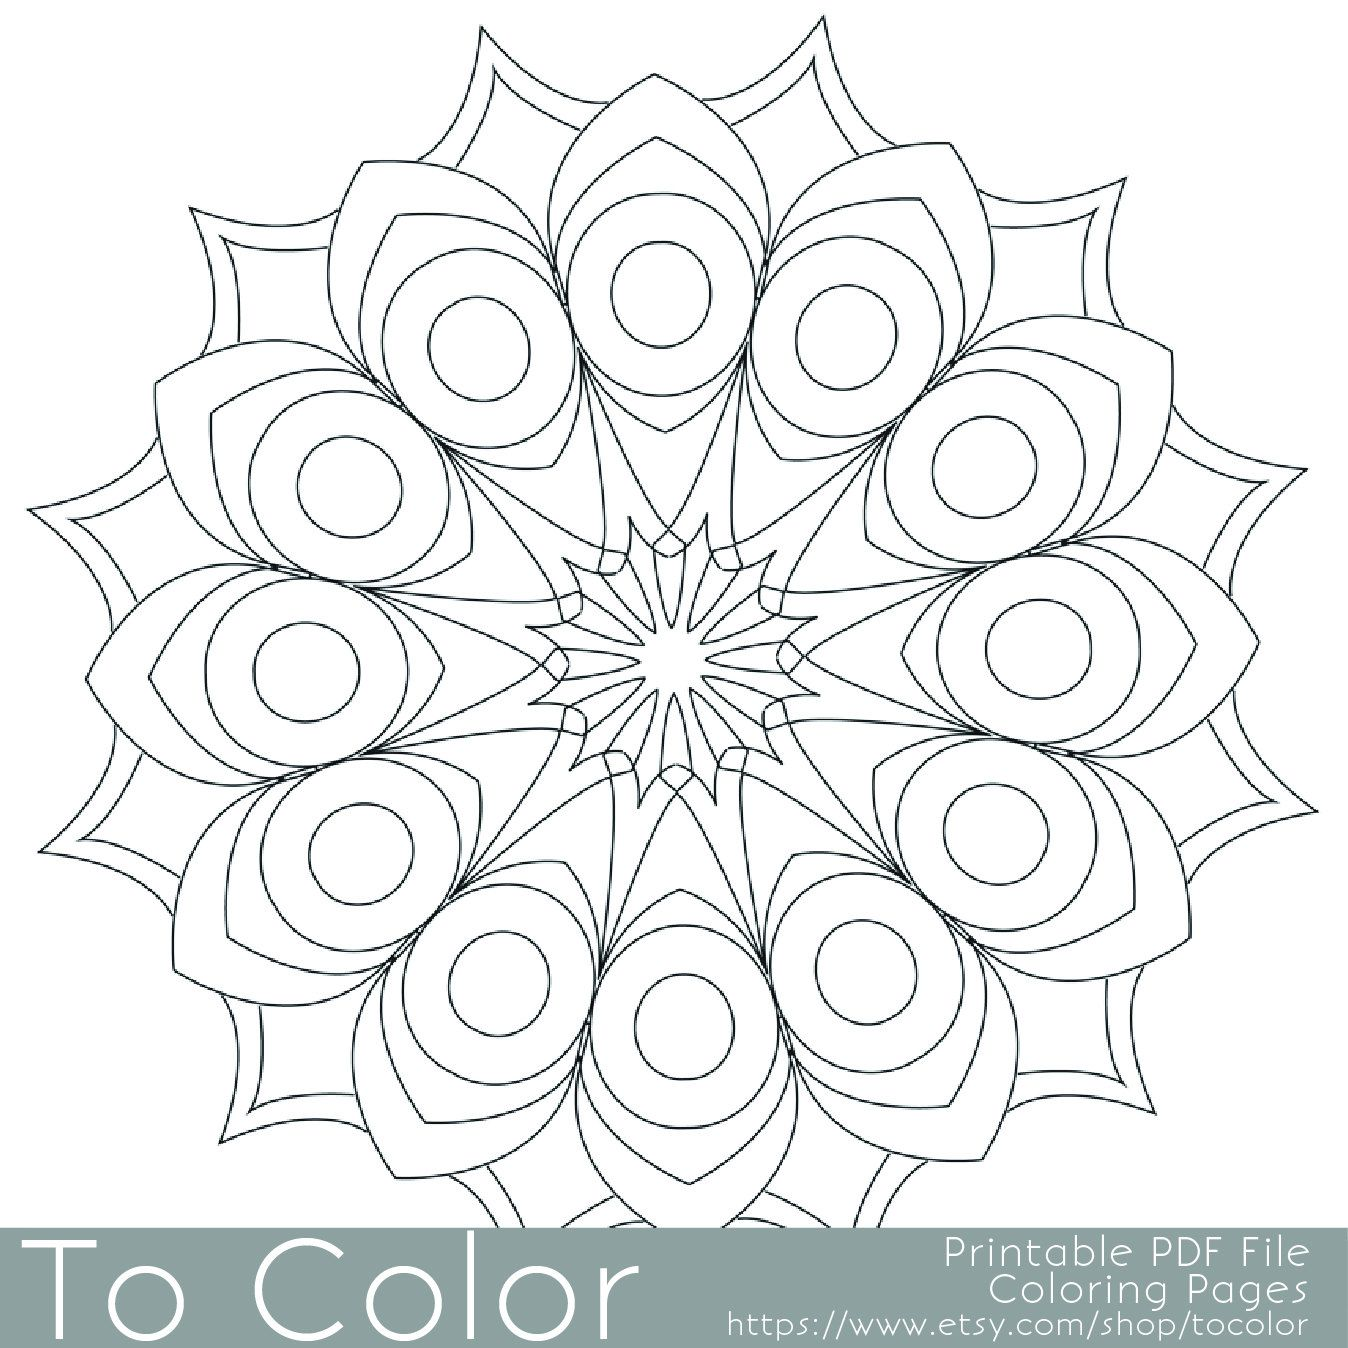 Printable Circular Mandala Easy Coloring Pages For Adults Big Spaces PDF JPG Instant